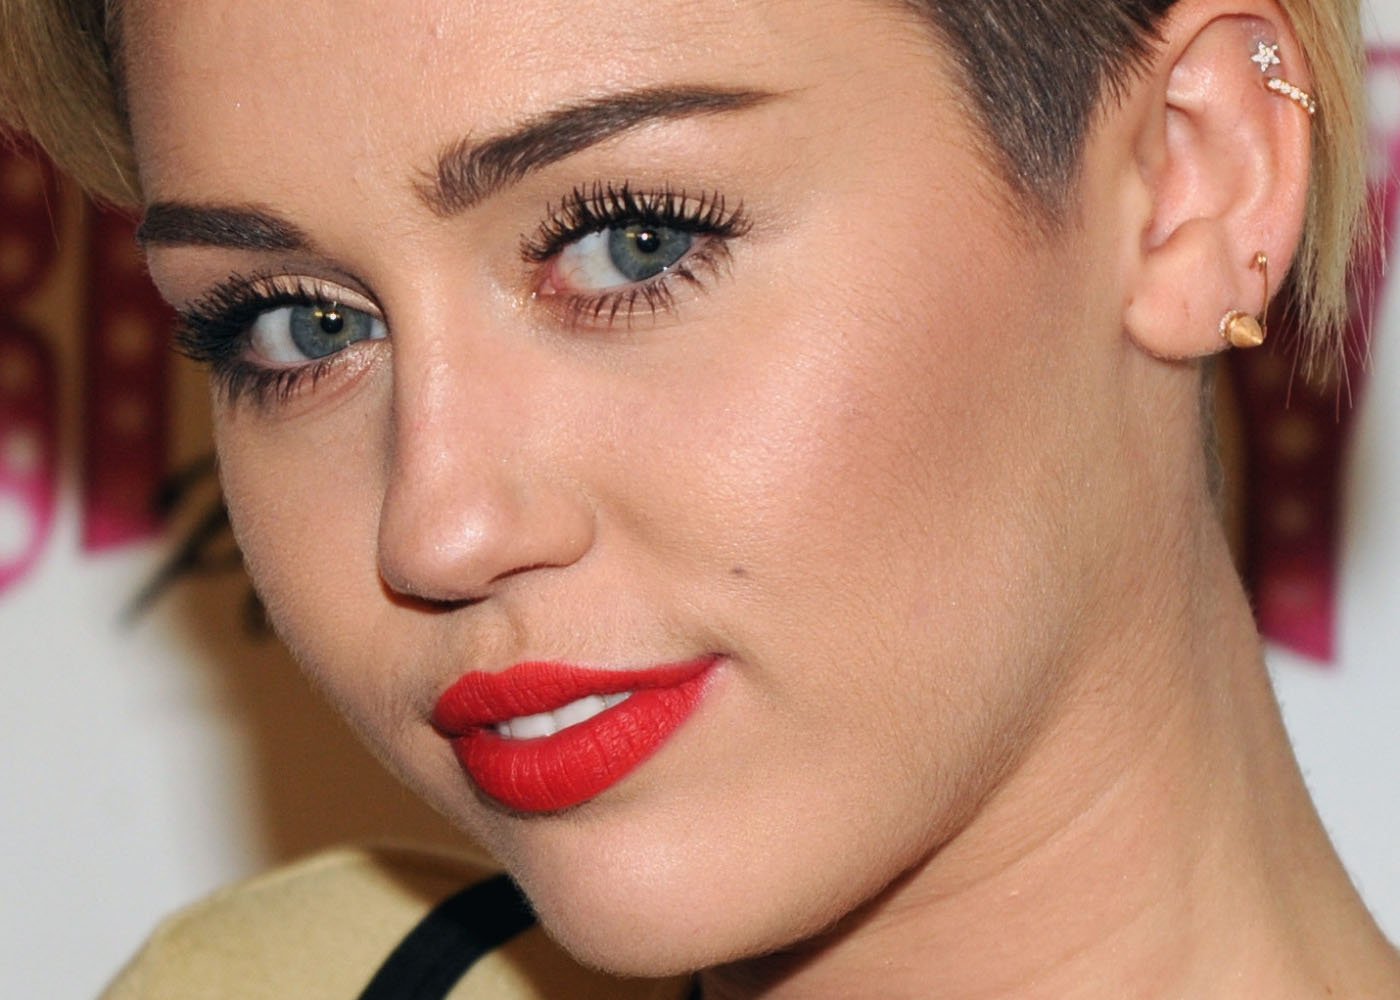 miley cyrus earring